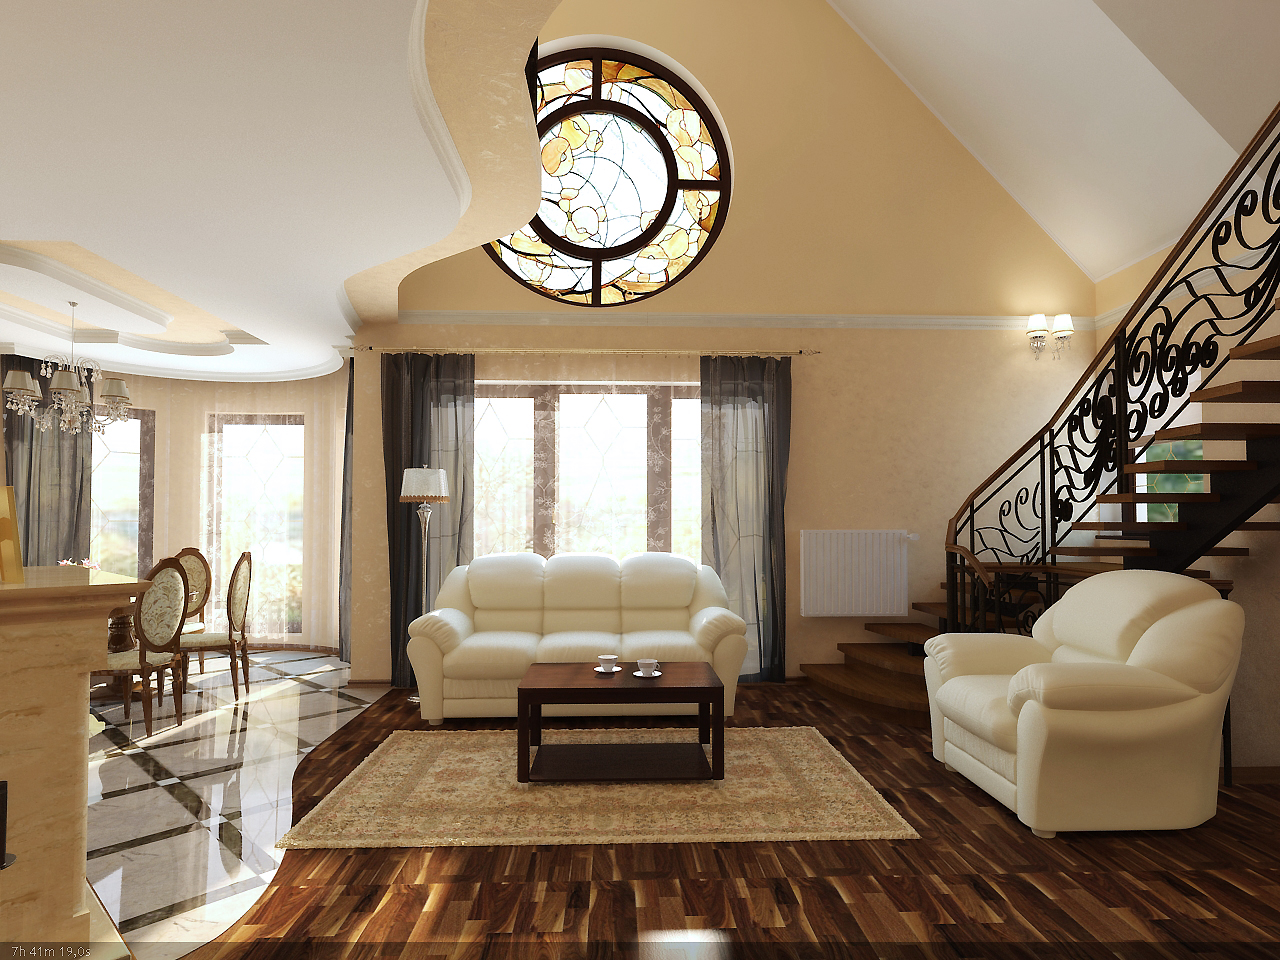 classic home interior - Design Home Com